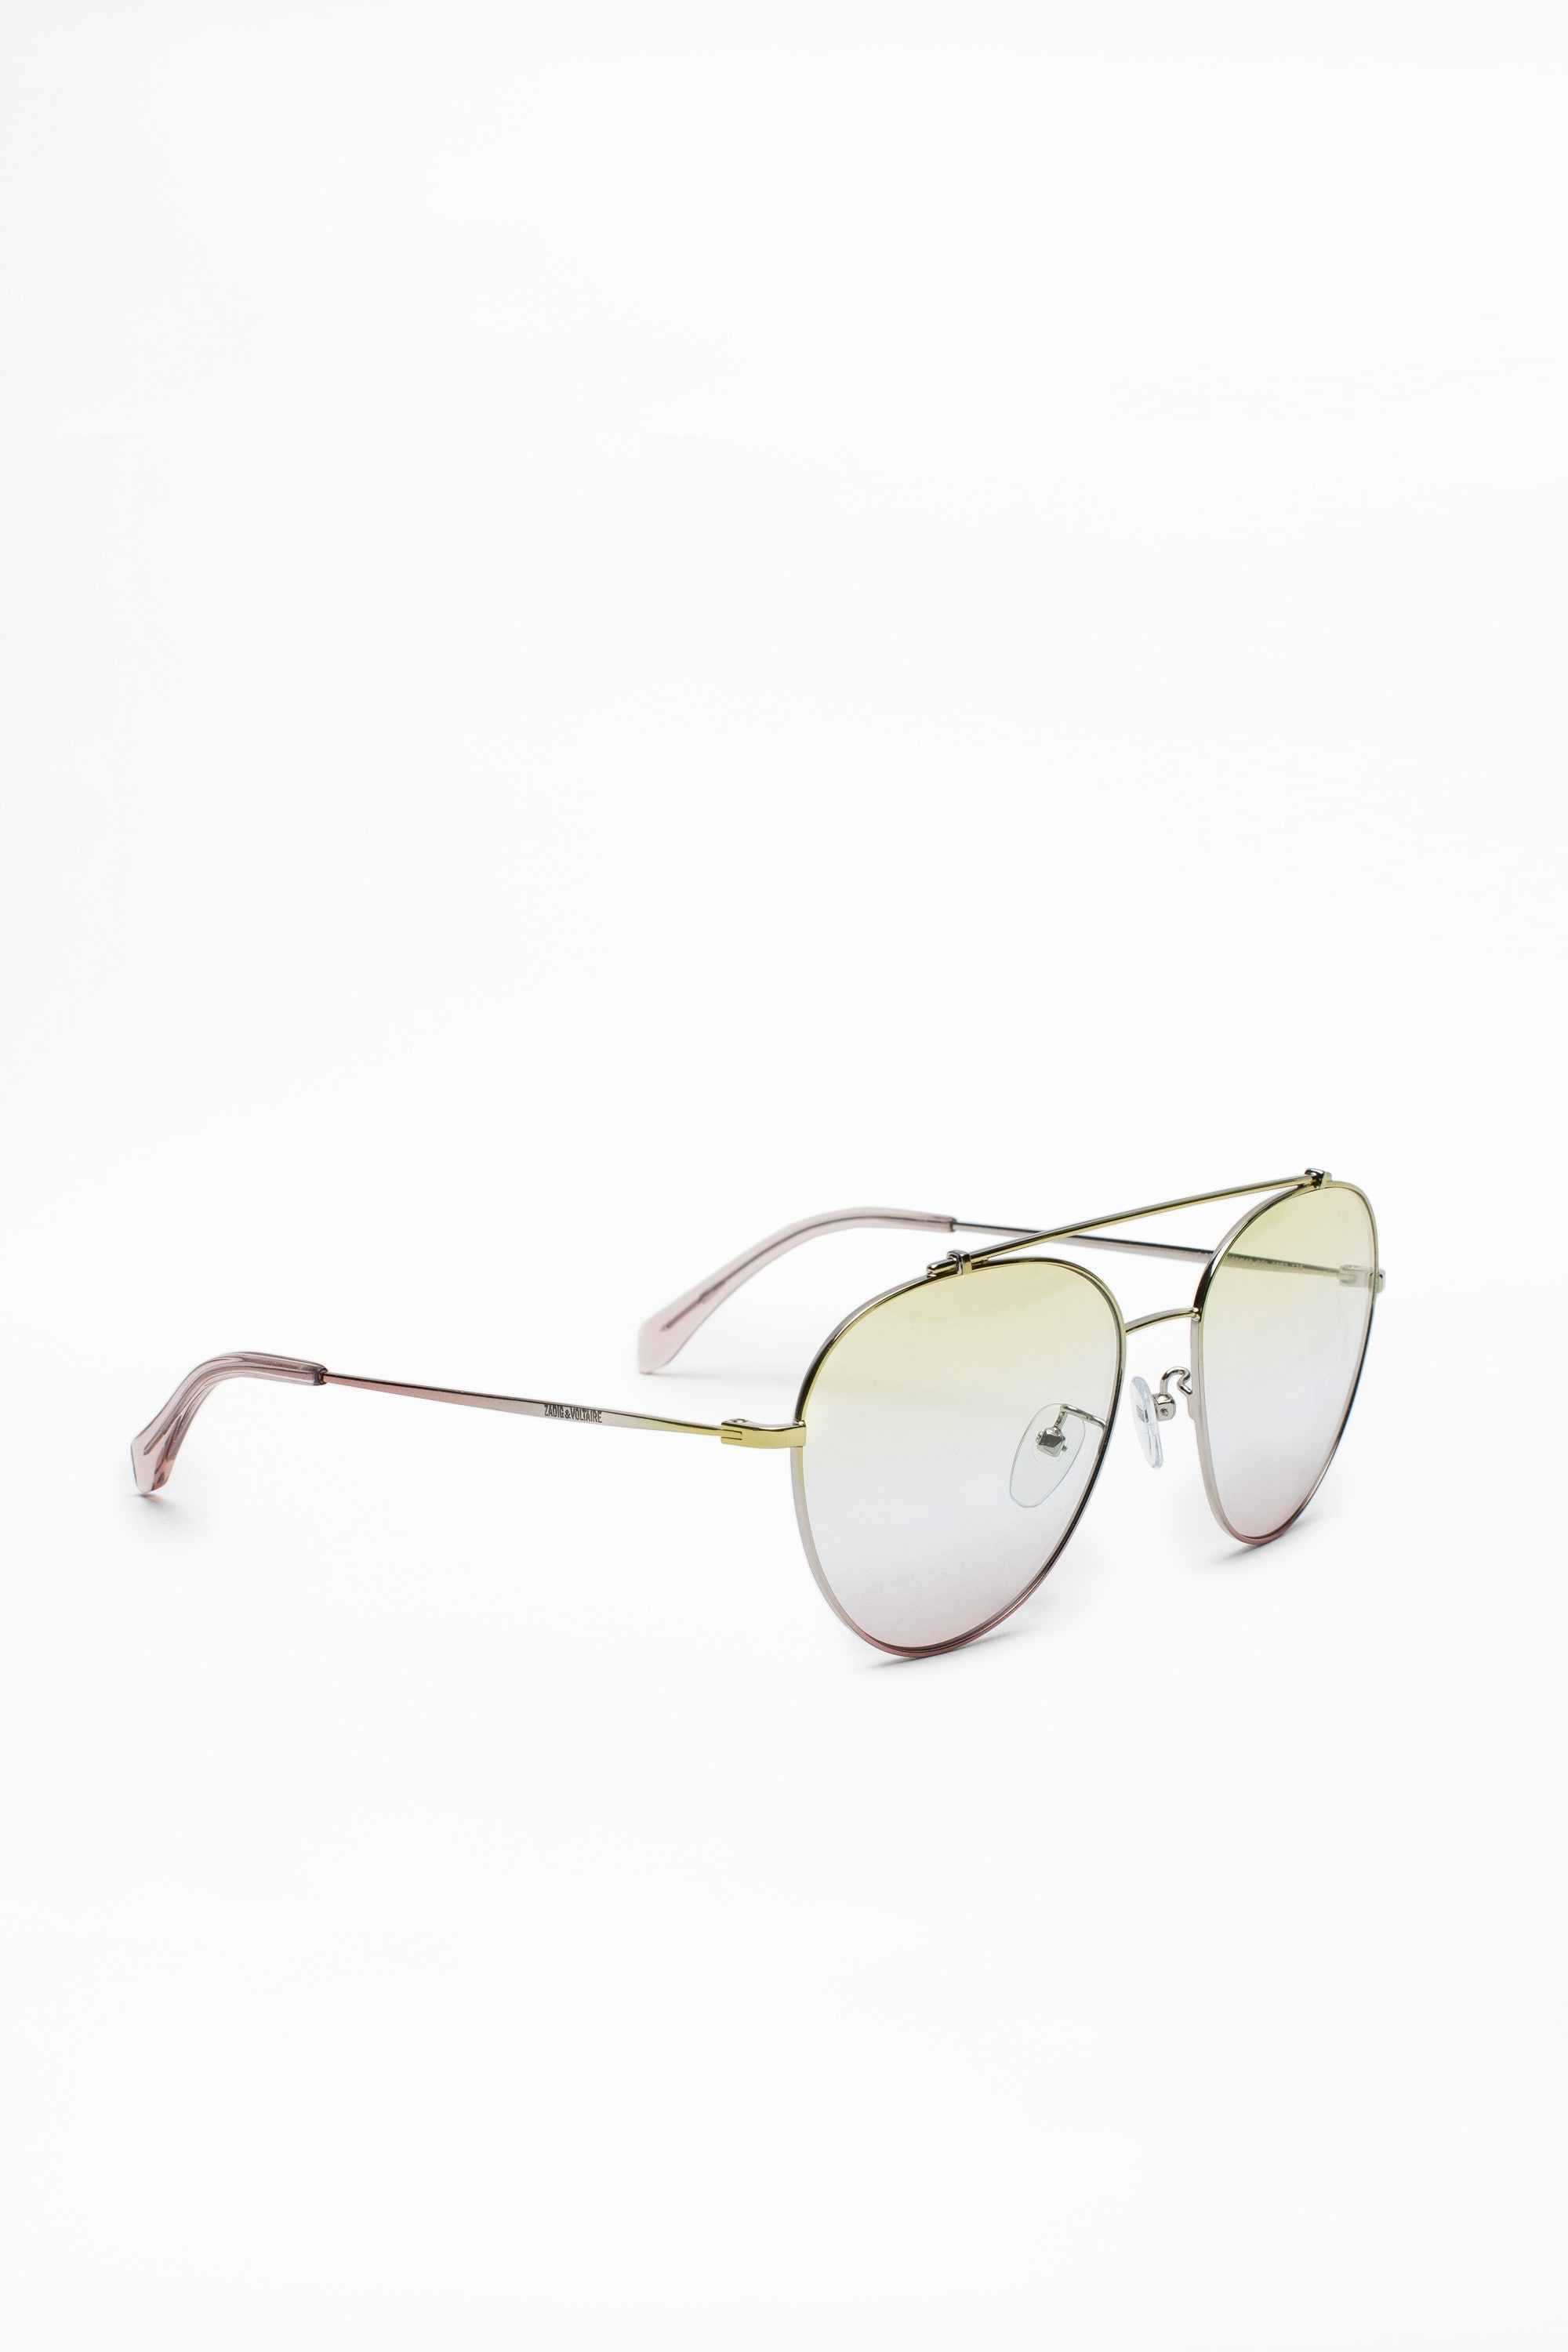 SZV192 Sunglasses